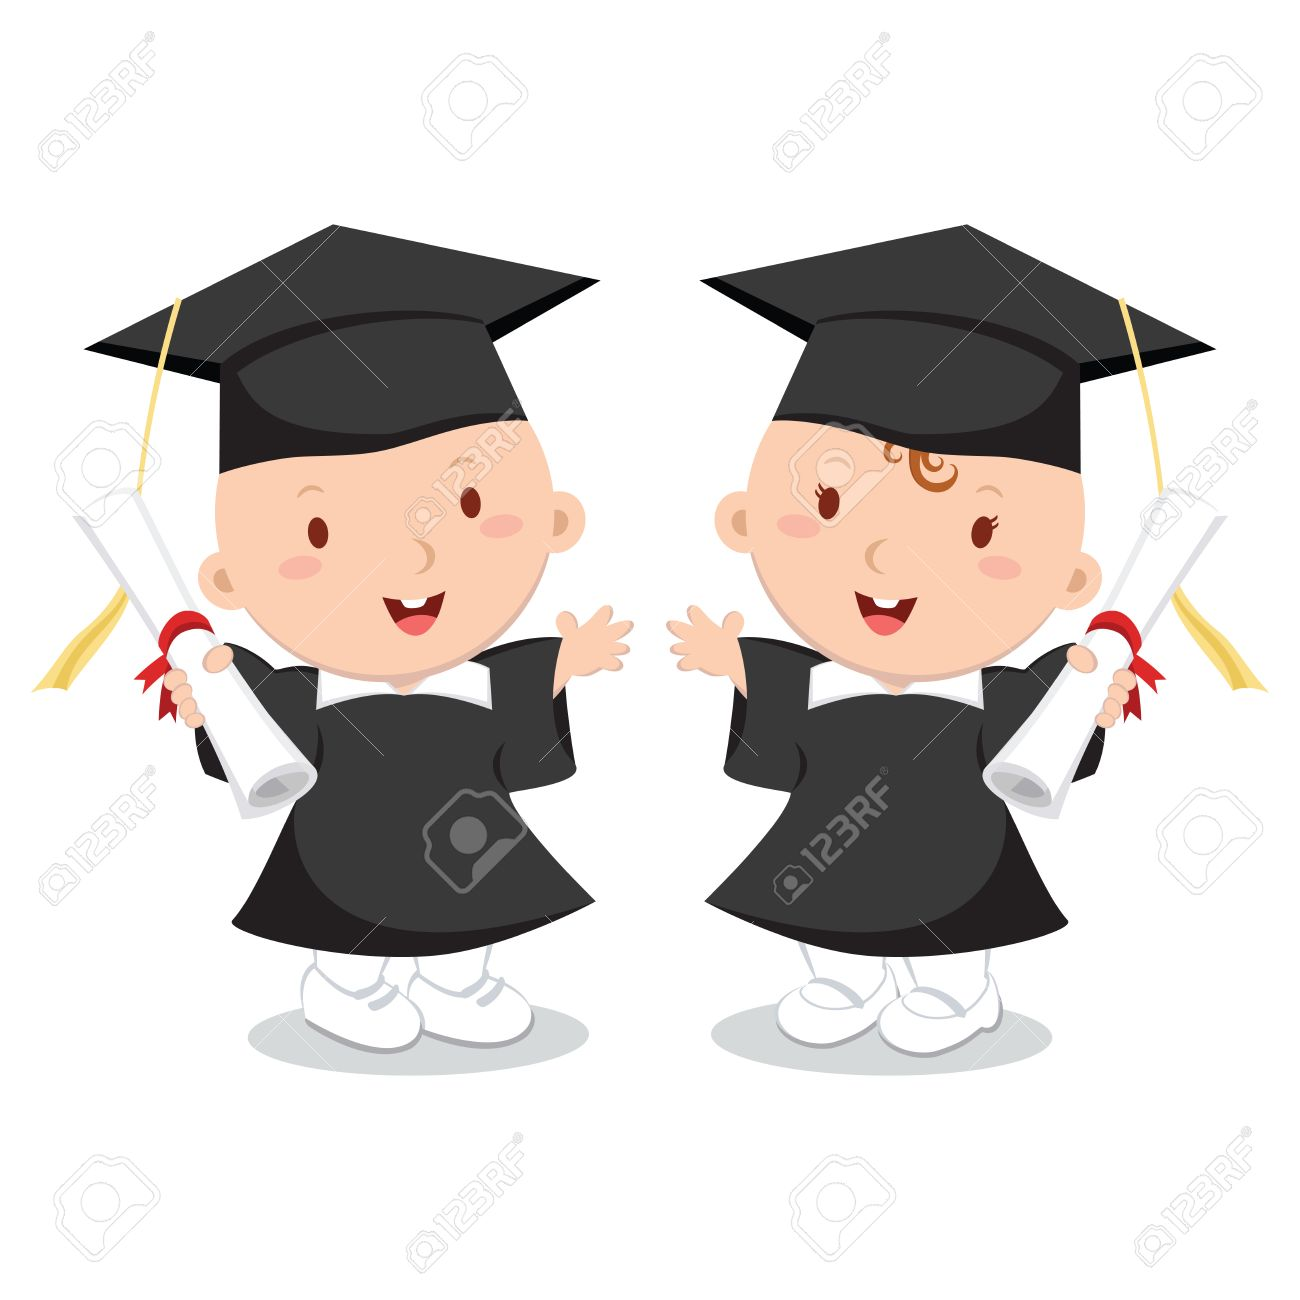 Baby Boy And Girl Wearing Graduation Gown And Cap. Royalty Free ...